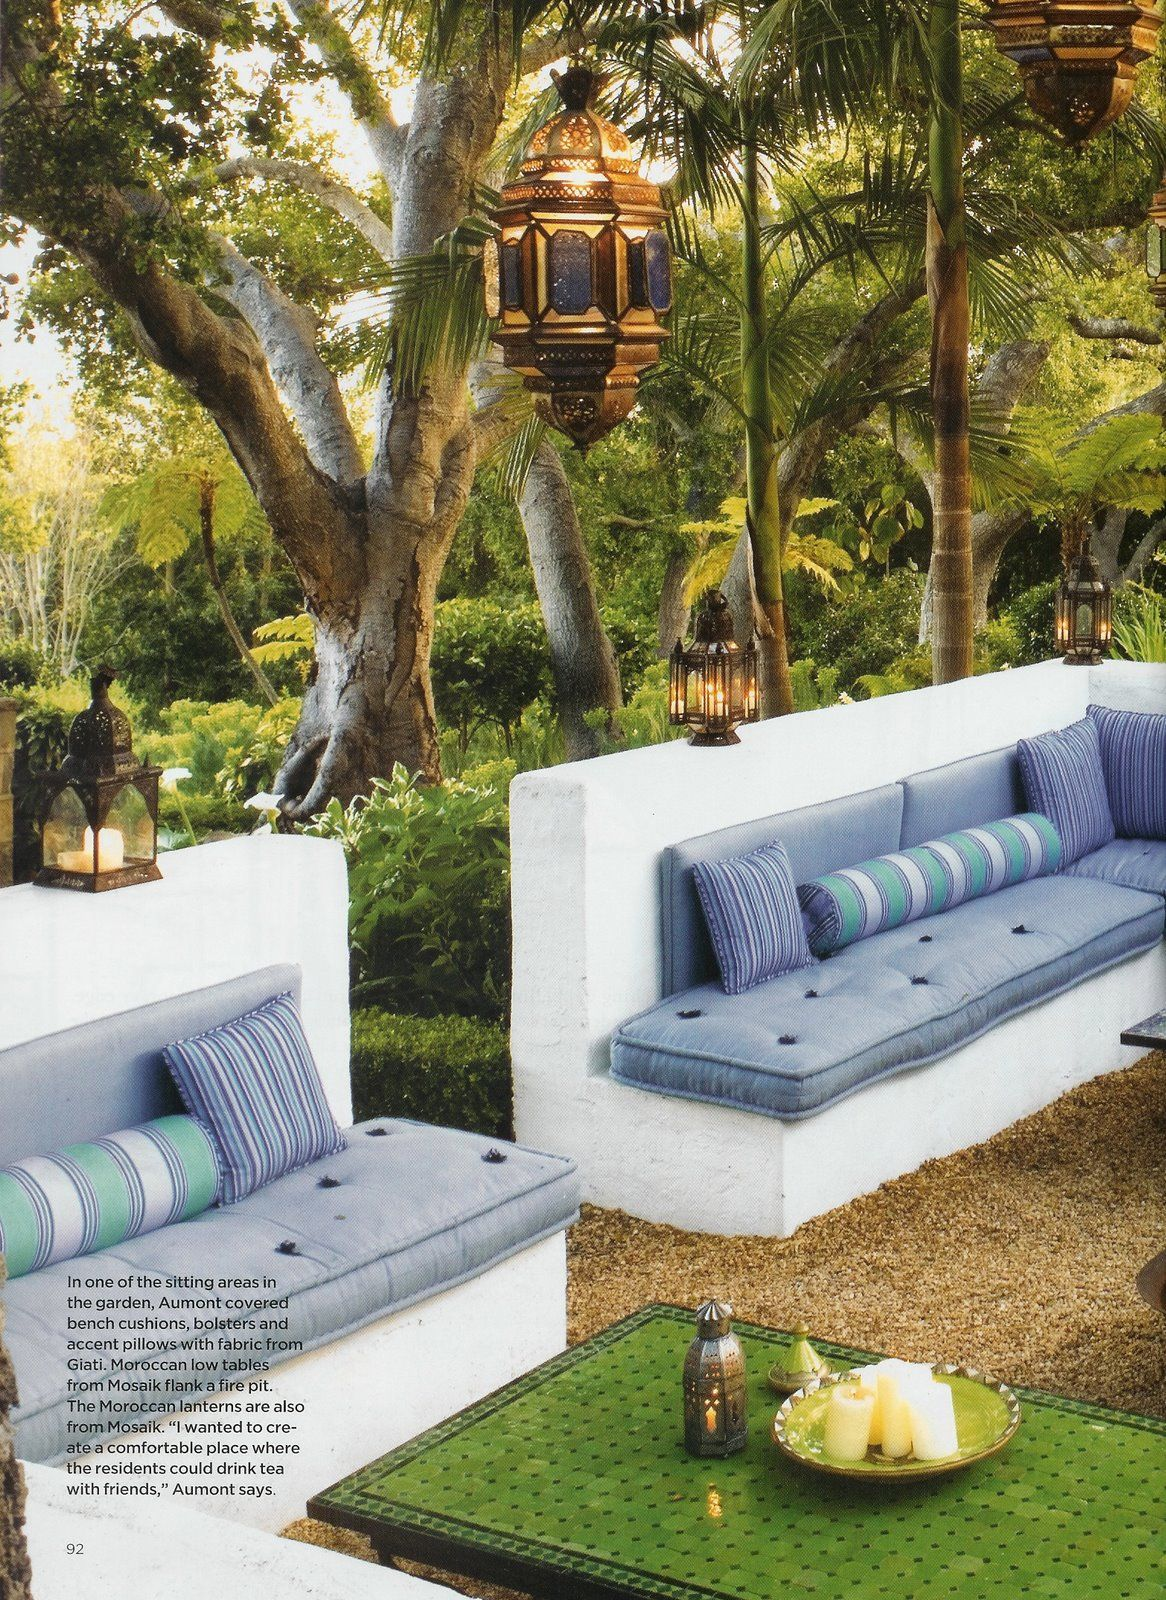 Moroccan inspired outdoor room by Helene Aumont built in seating with a low  wall outdoors with low tables and lanterns lovely cushions such serene vibe